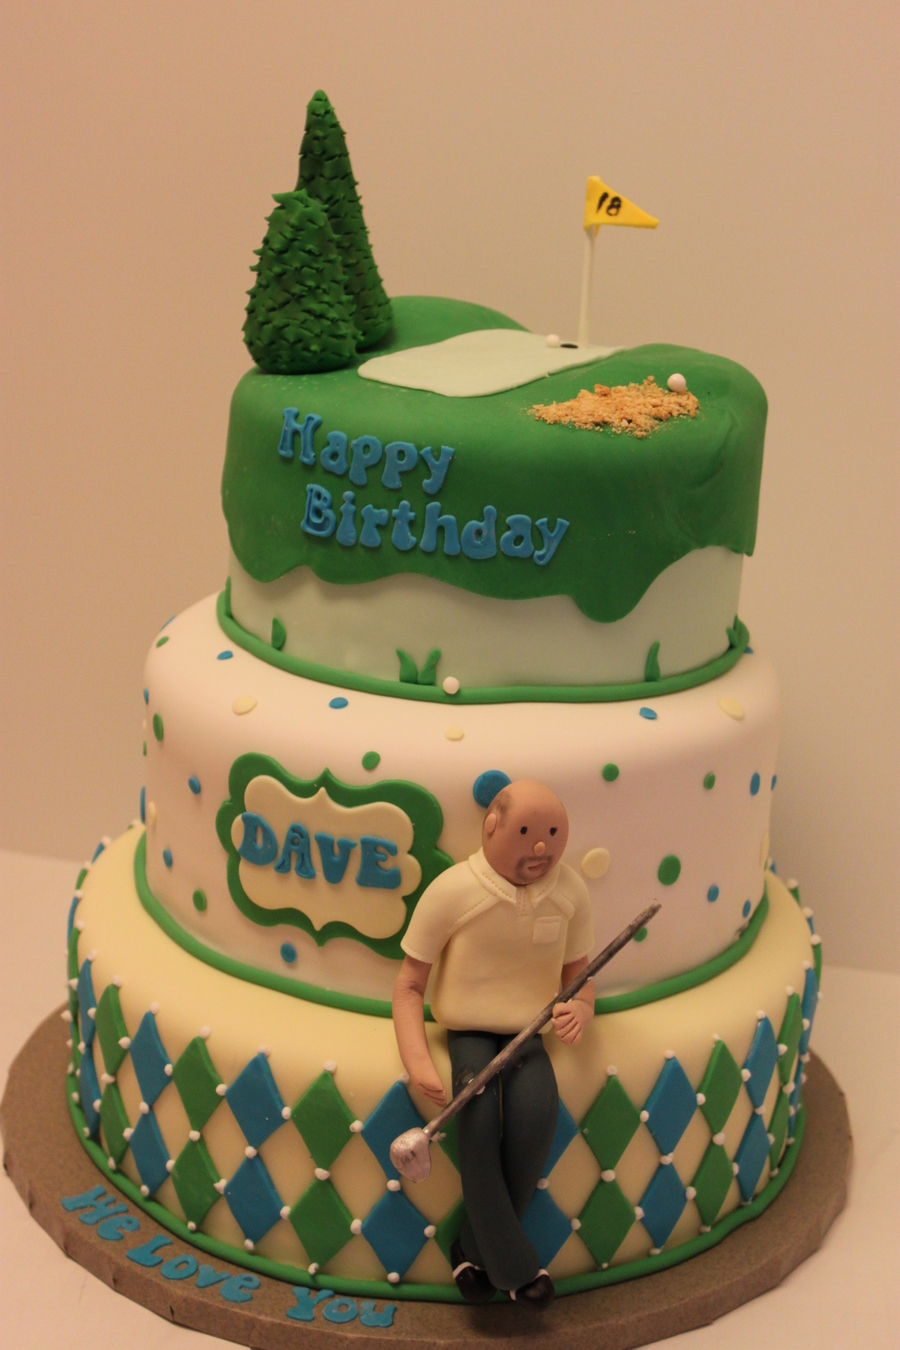 The Golfer Has A Birthday! on Cake Central